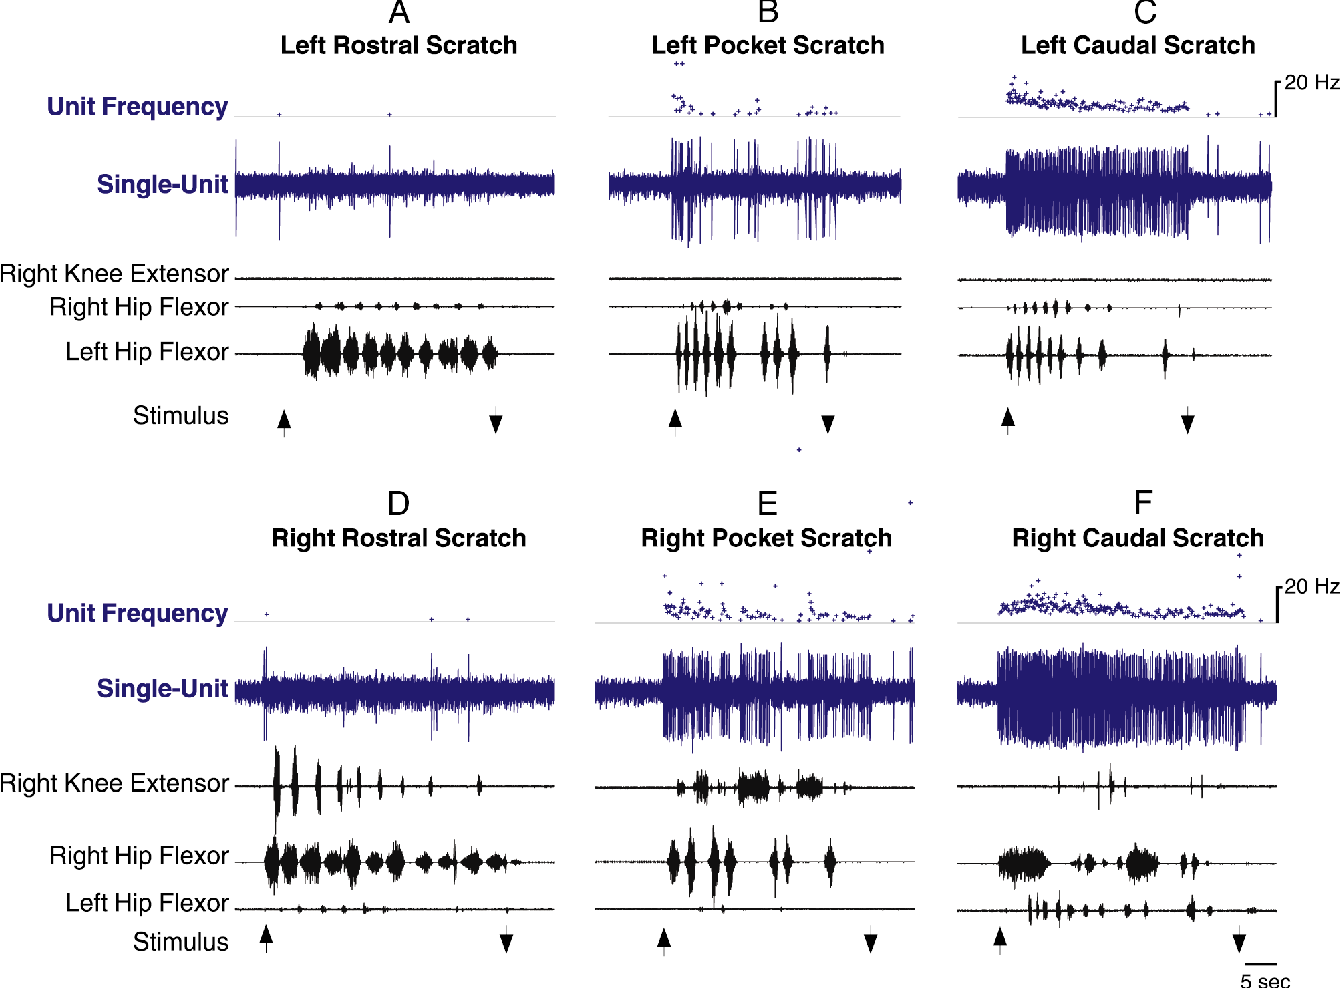 Broadly Tuned Spinal Neurons For Each Form Of Fictive Scratching In